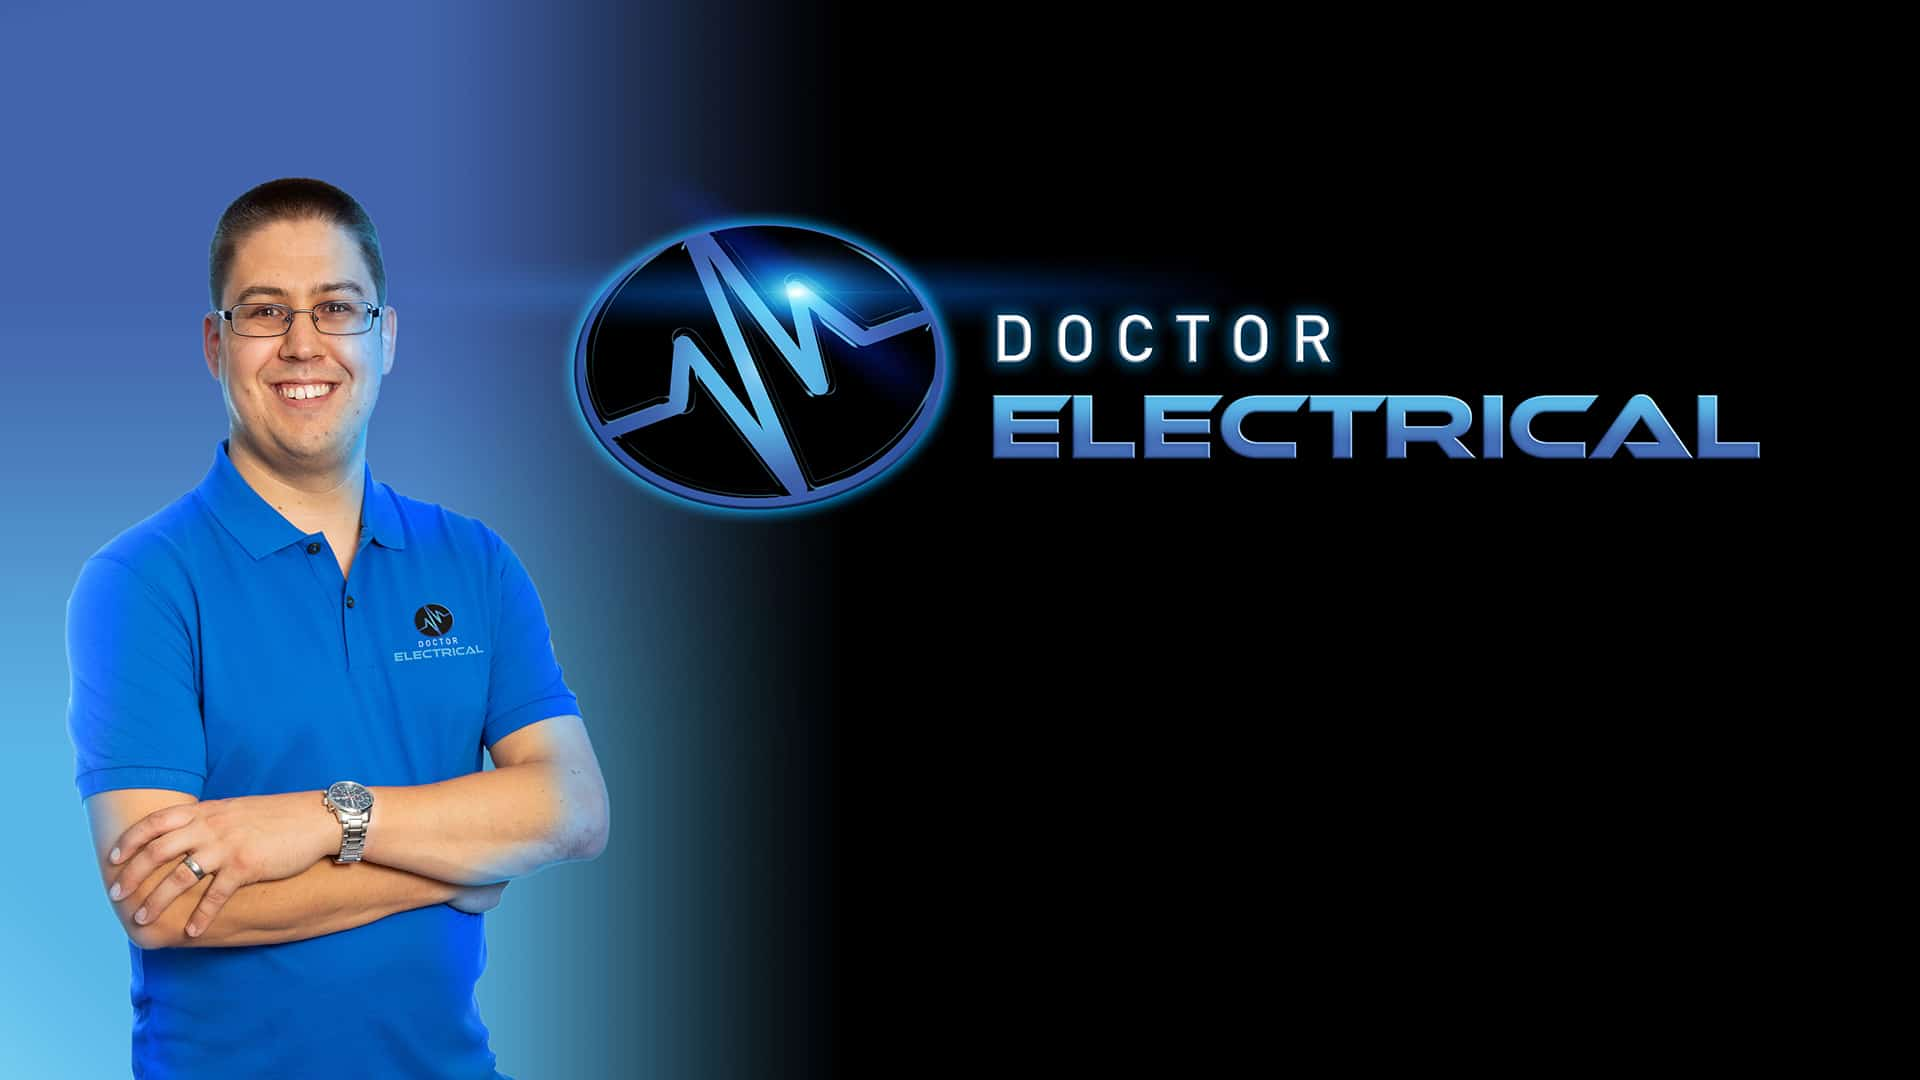 Doctor Electrical Image 2